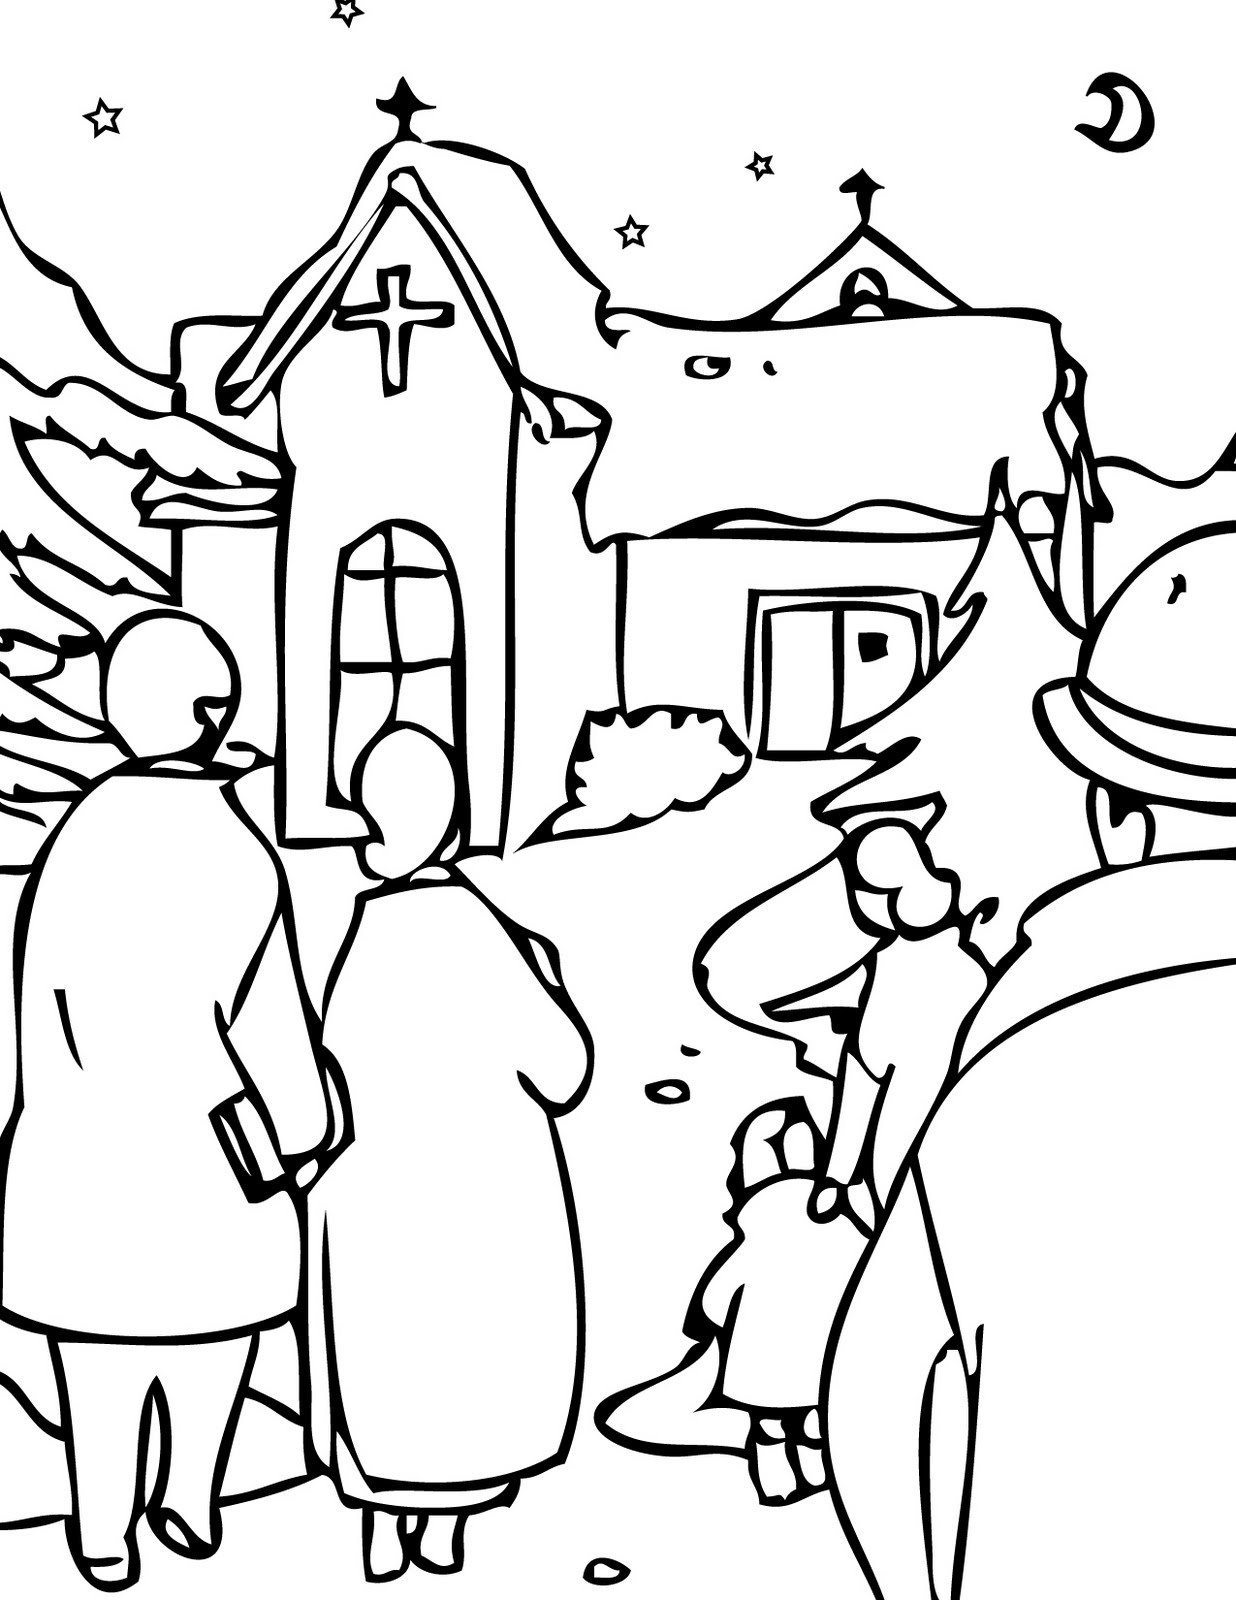 coloring pages christams - photo#34